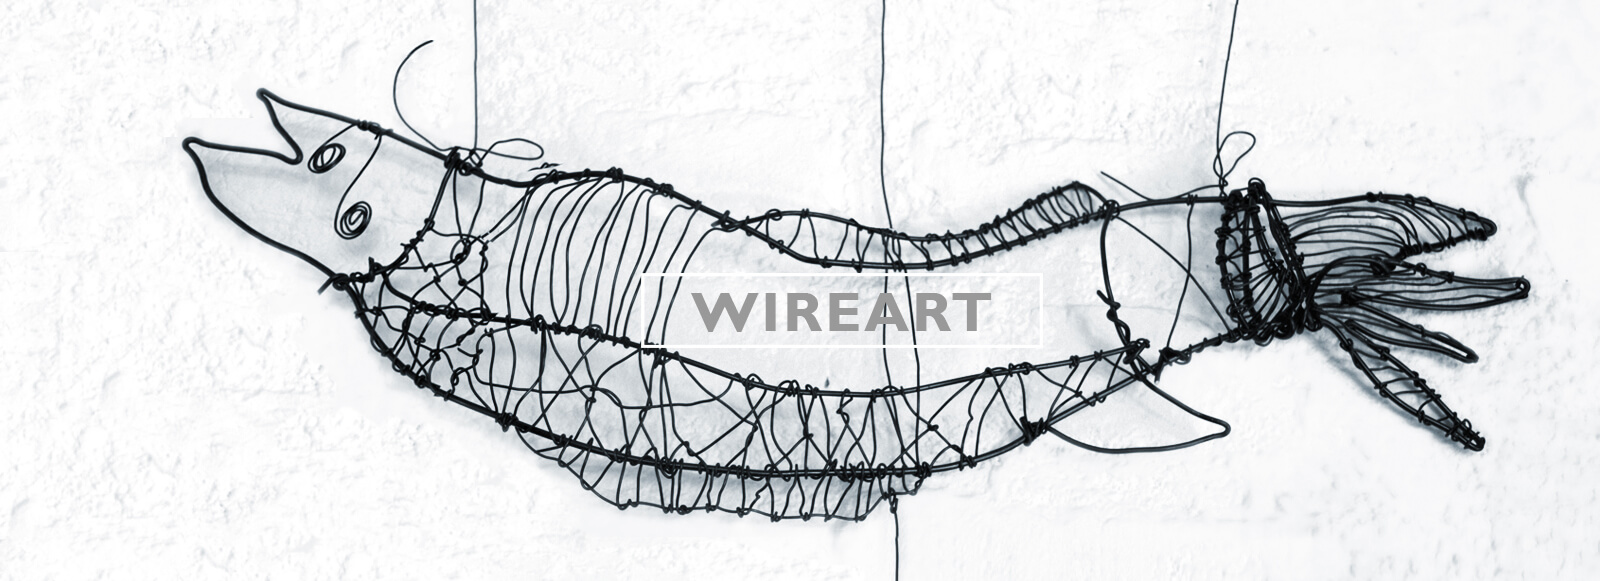 Wire art food by Angeles Nieto